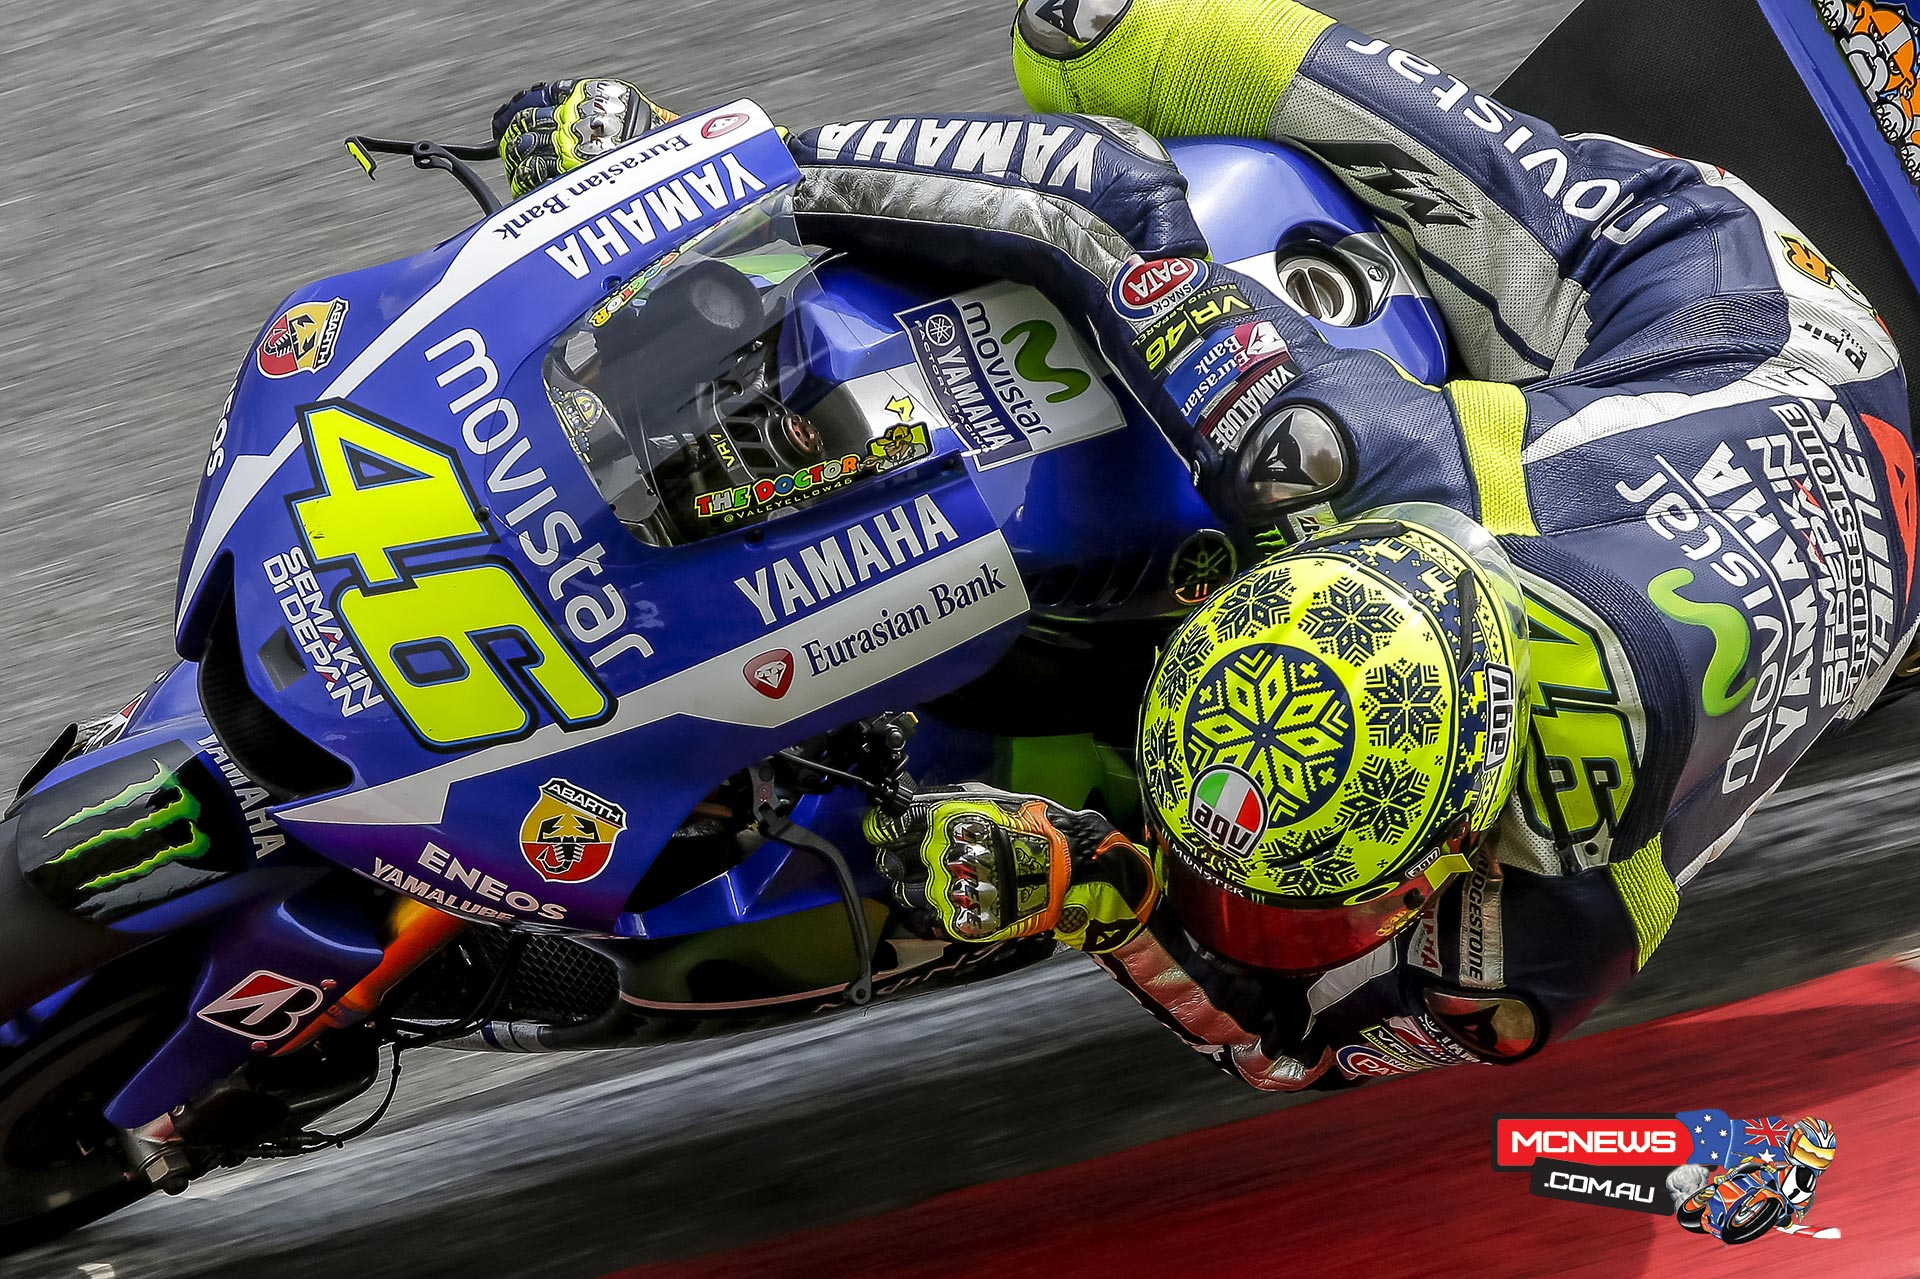 "Valentino Rossi / 6th / 2m00.308 - ""We did a lot of testing today. We tried some forks and especially concentrated on rear grip in acceleration to exit from the corner in the best way. We also continued to work on the gearbox and that still gives a good feeling. We will be ready for tomorrow, because that will be the important day. Tomorrow everybody will be at their maximum for the time attack and they can try to do a long run, so I think tomorrow will be very interesting to understand the pace of all the guys. It will be a good target to be a bit faster than the last test and I think we have to improve the lap times and our pace during the simulation."""